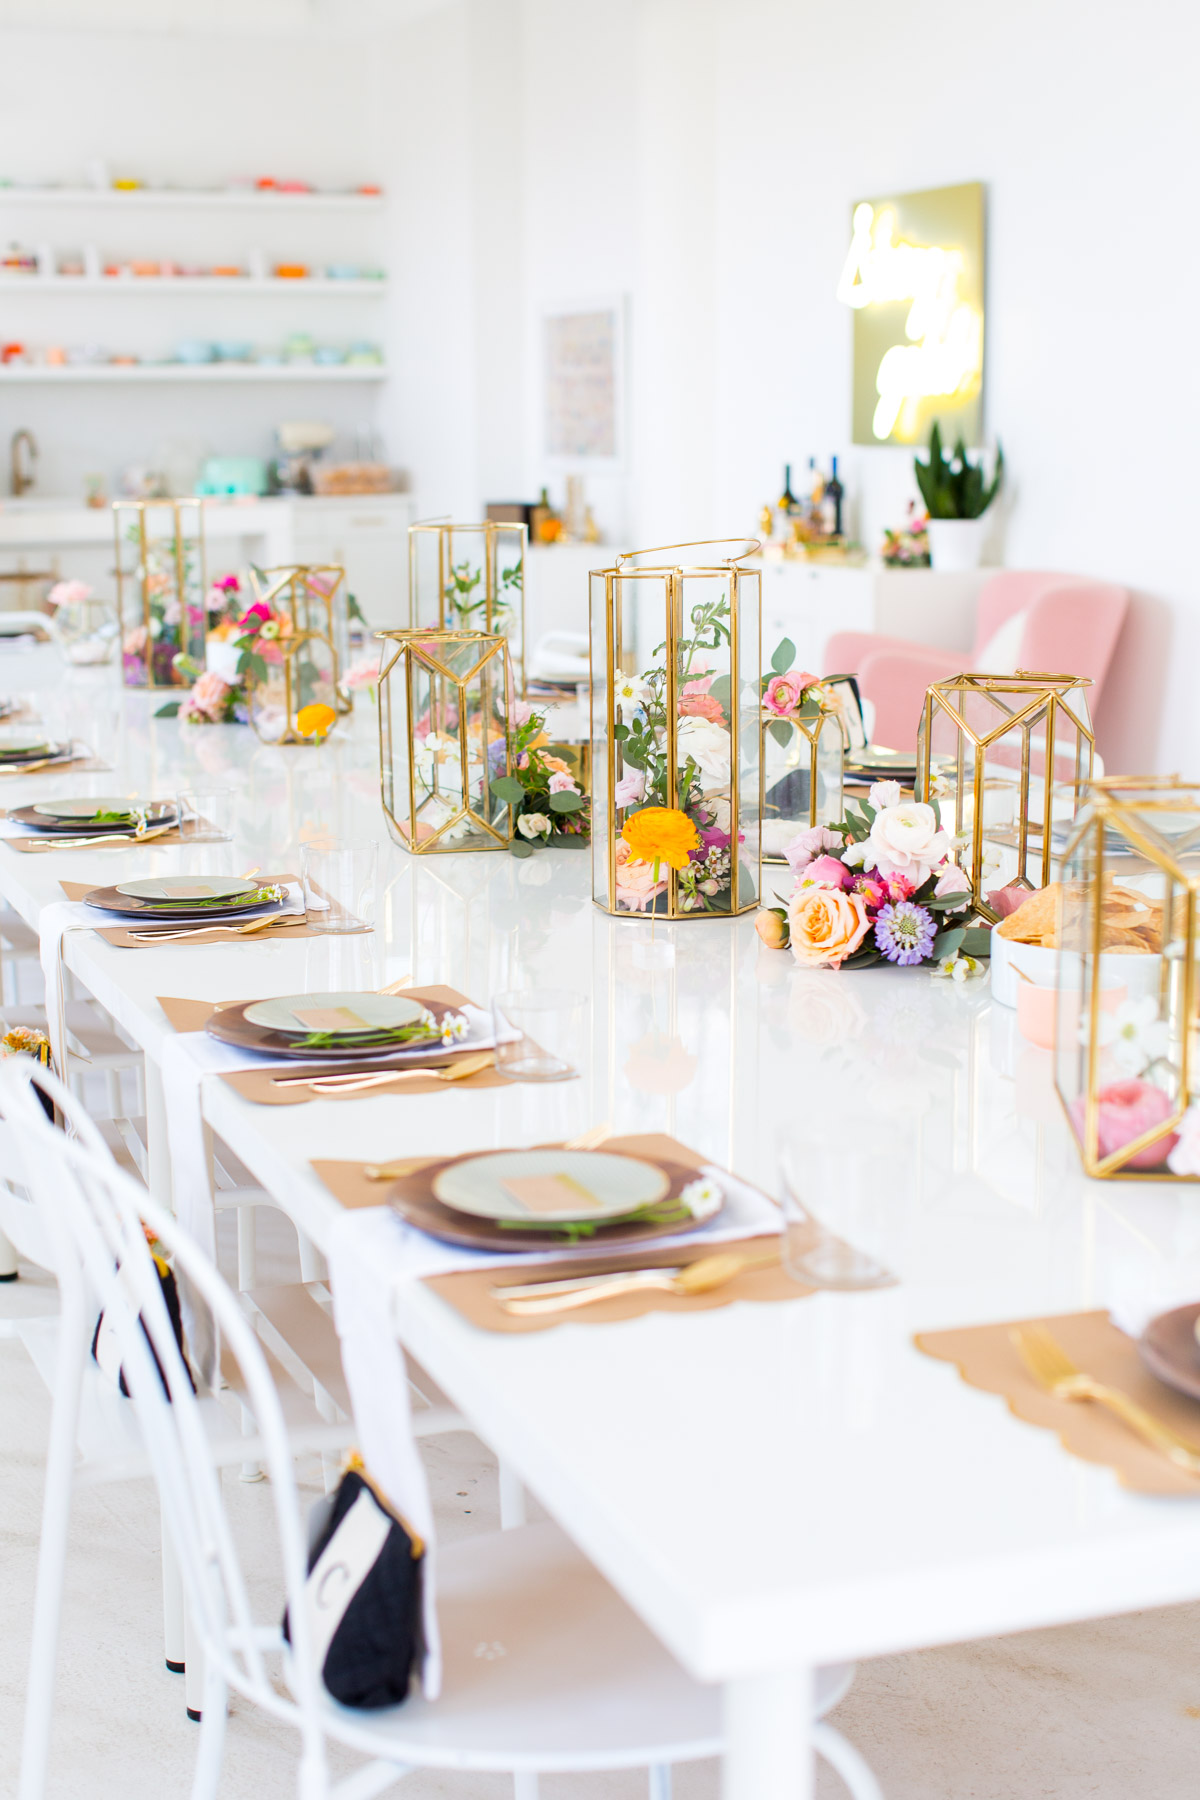 25 Bridal Shower Centerpieces The Bride To Be Will Love